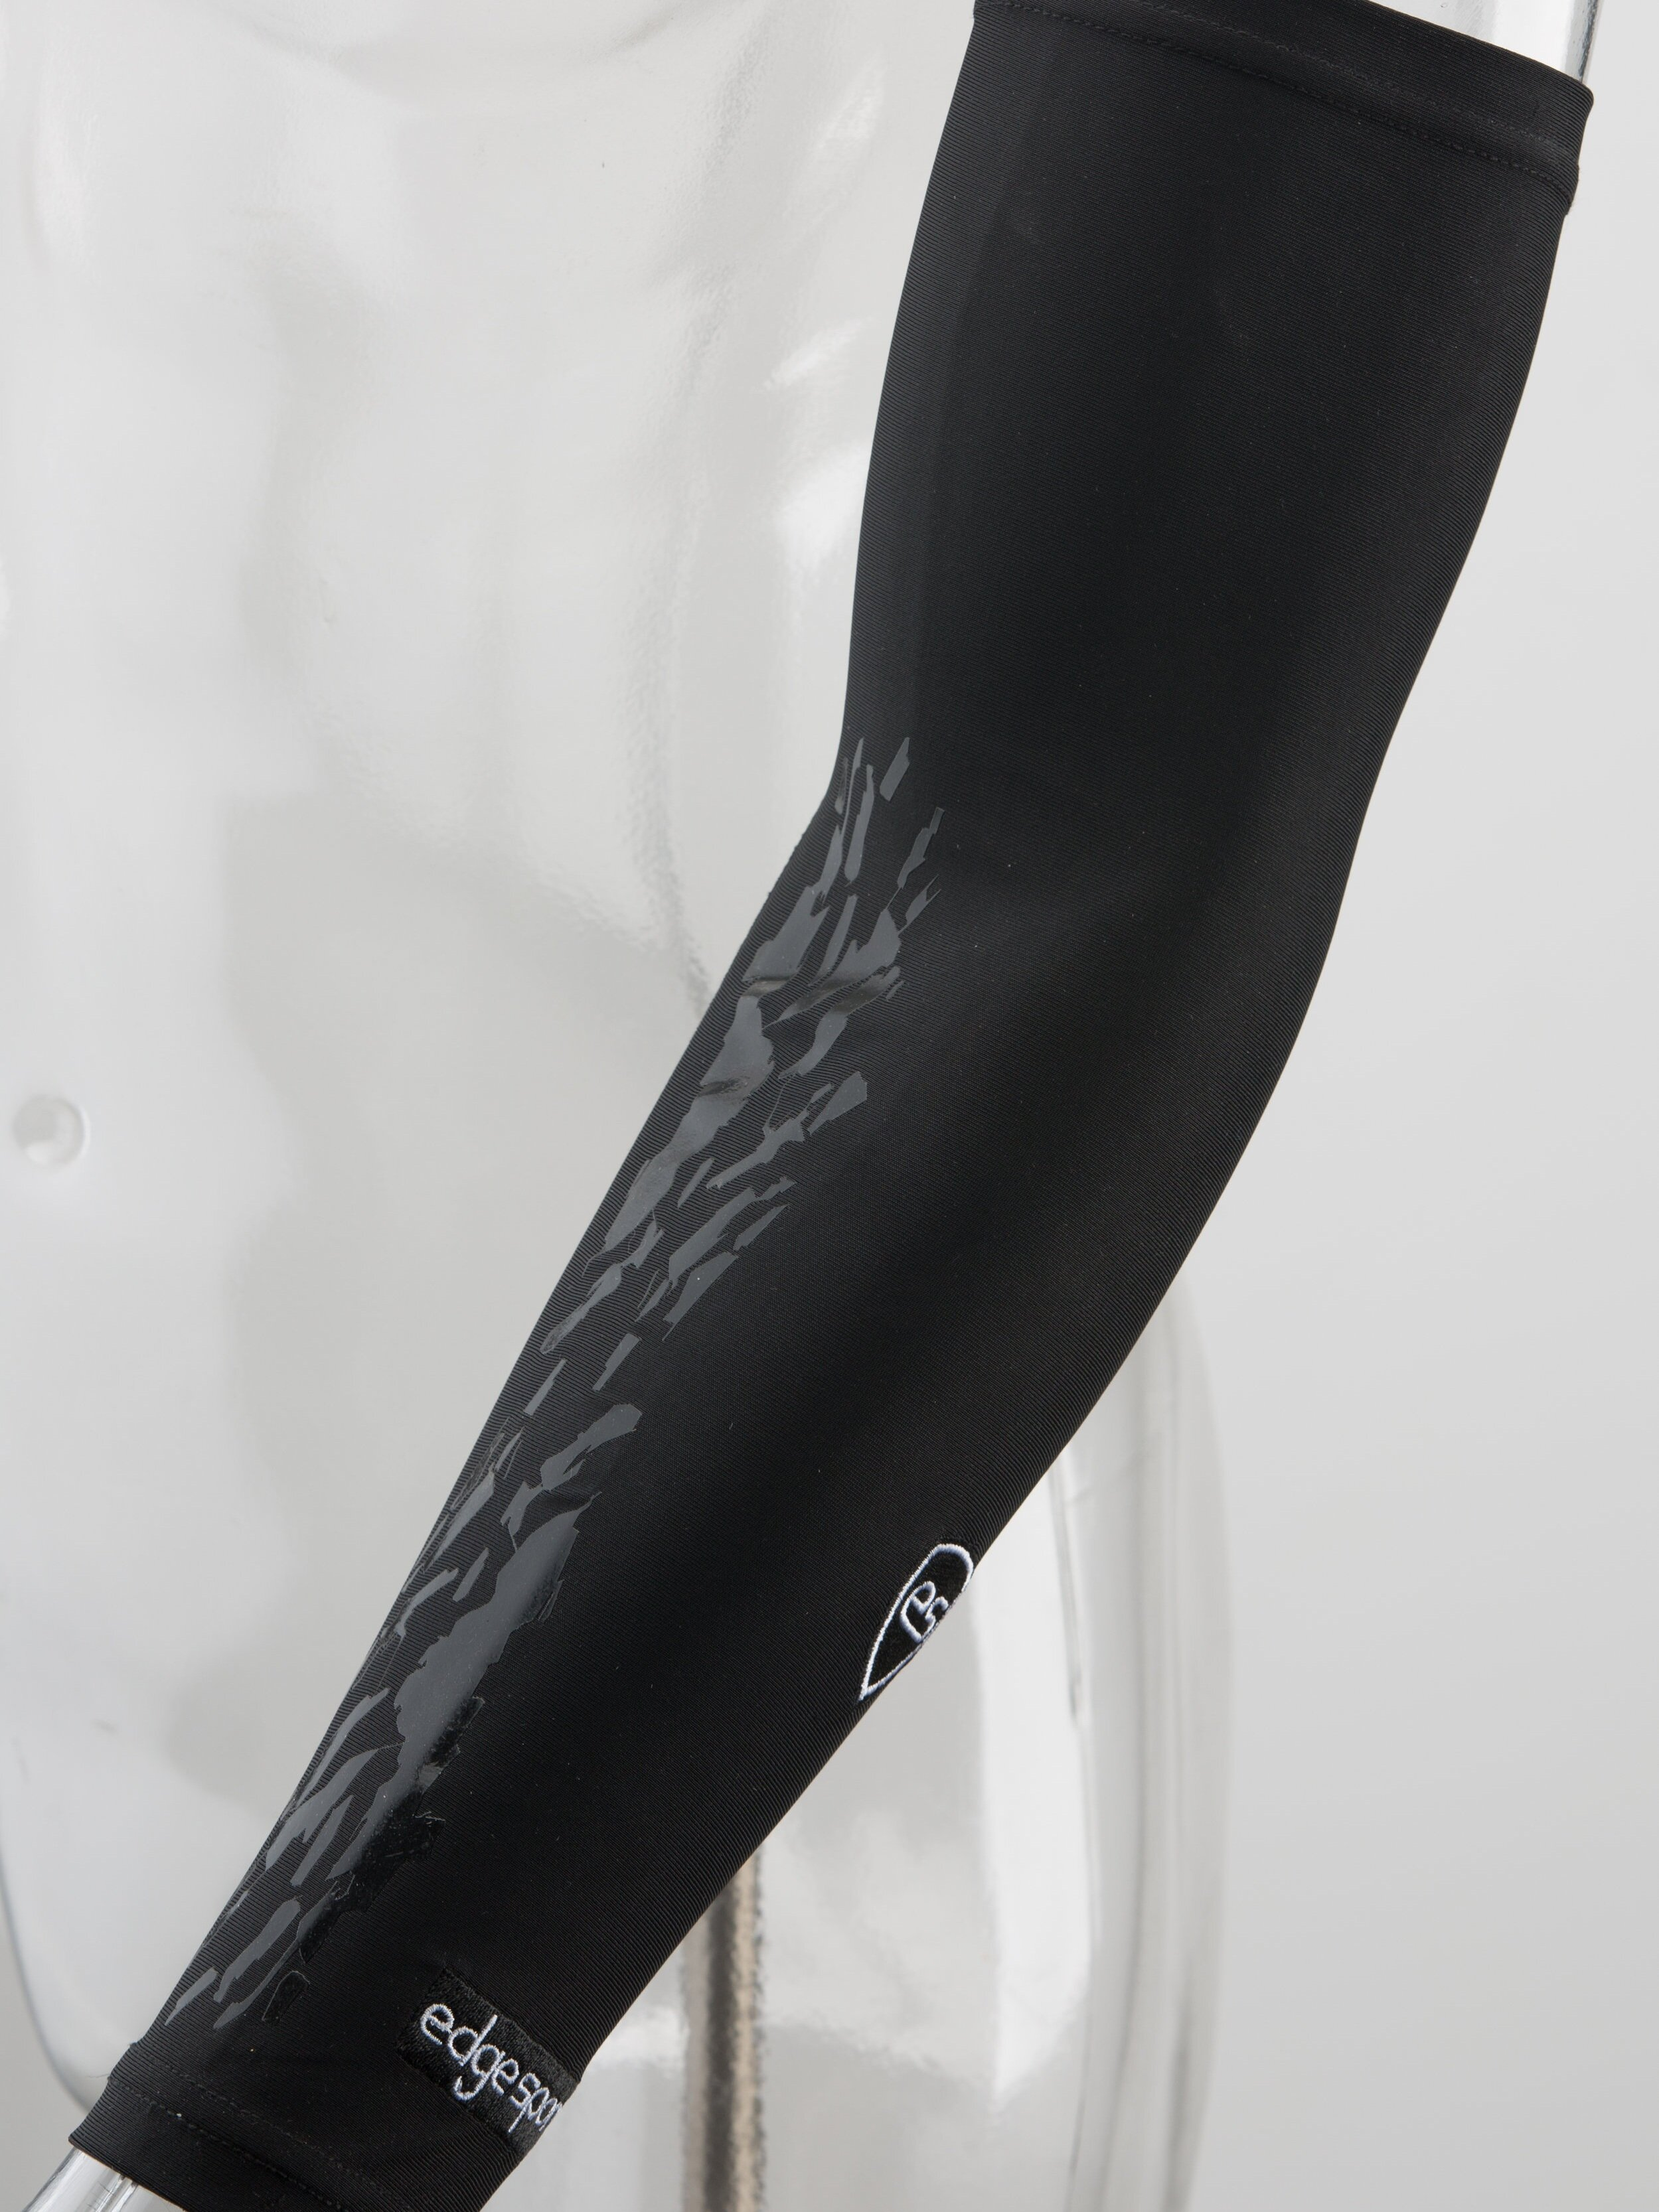 - THE NEW EDGE SPORTS ARM SLEEVES WITH OUR PATENTED AND ALL LEAGUE APPROVED GRIP IS READY FOR PRE - ORDER!Expertly crafted for moisture wicking and compression. The inside of the arm is covered in our STRONGHOLD Grip material. Enough compression to keep your arms ready, all with a grip to prevent those game losing turnovers.